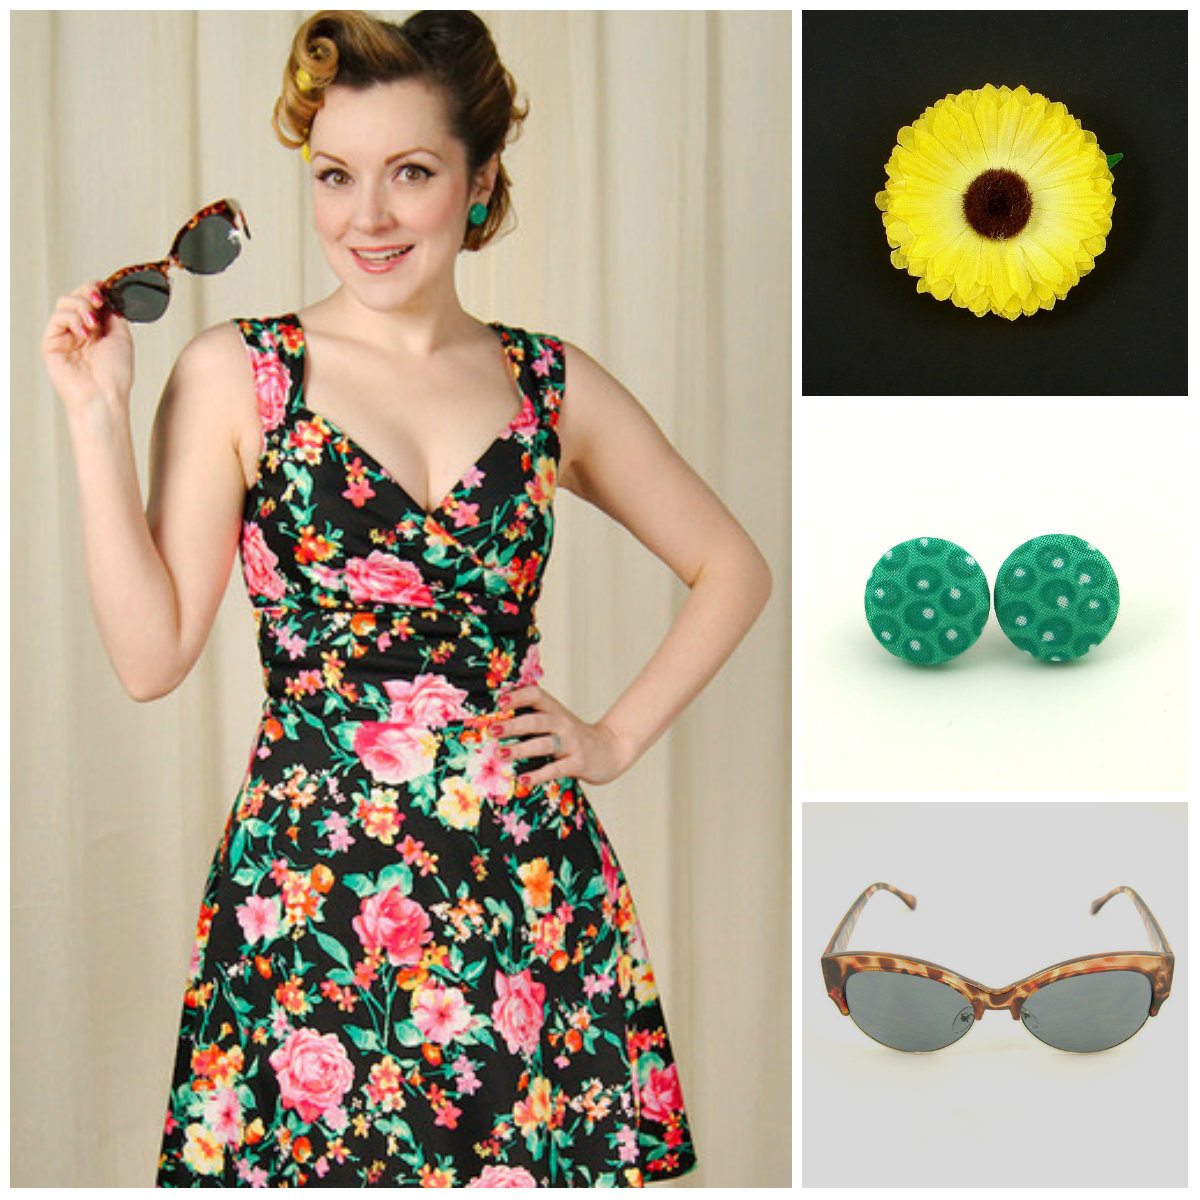 Secret Garden Swing dress by Steady Clothing styled with Yellow Mini Hair Flower, Green Olive Fabric earrings and Tort Mega Bucks sunglasses.